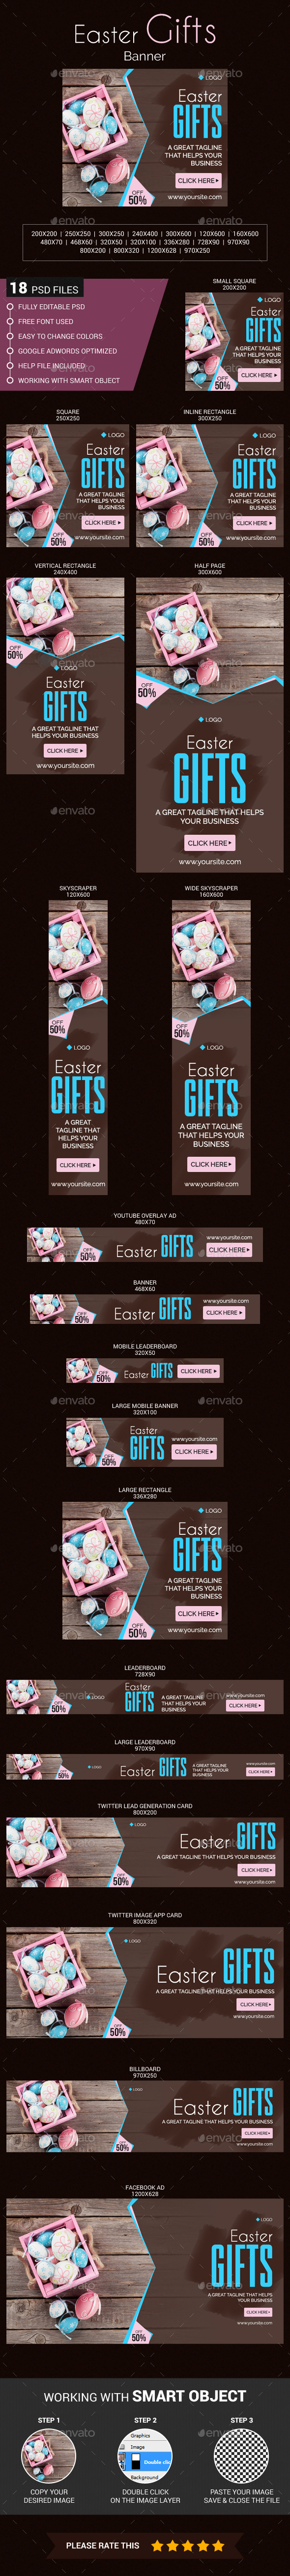 Easter Gifts Banner - Banners & Ads Web Elements